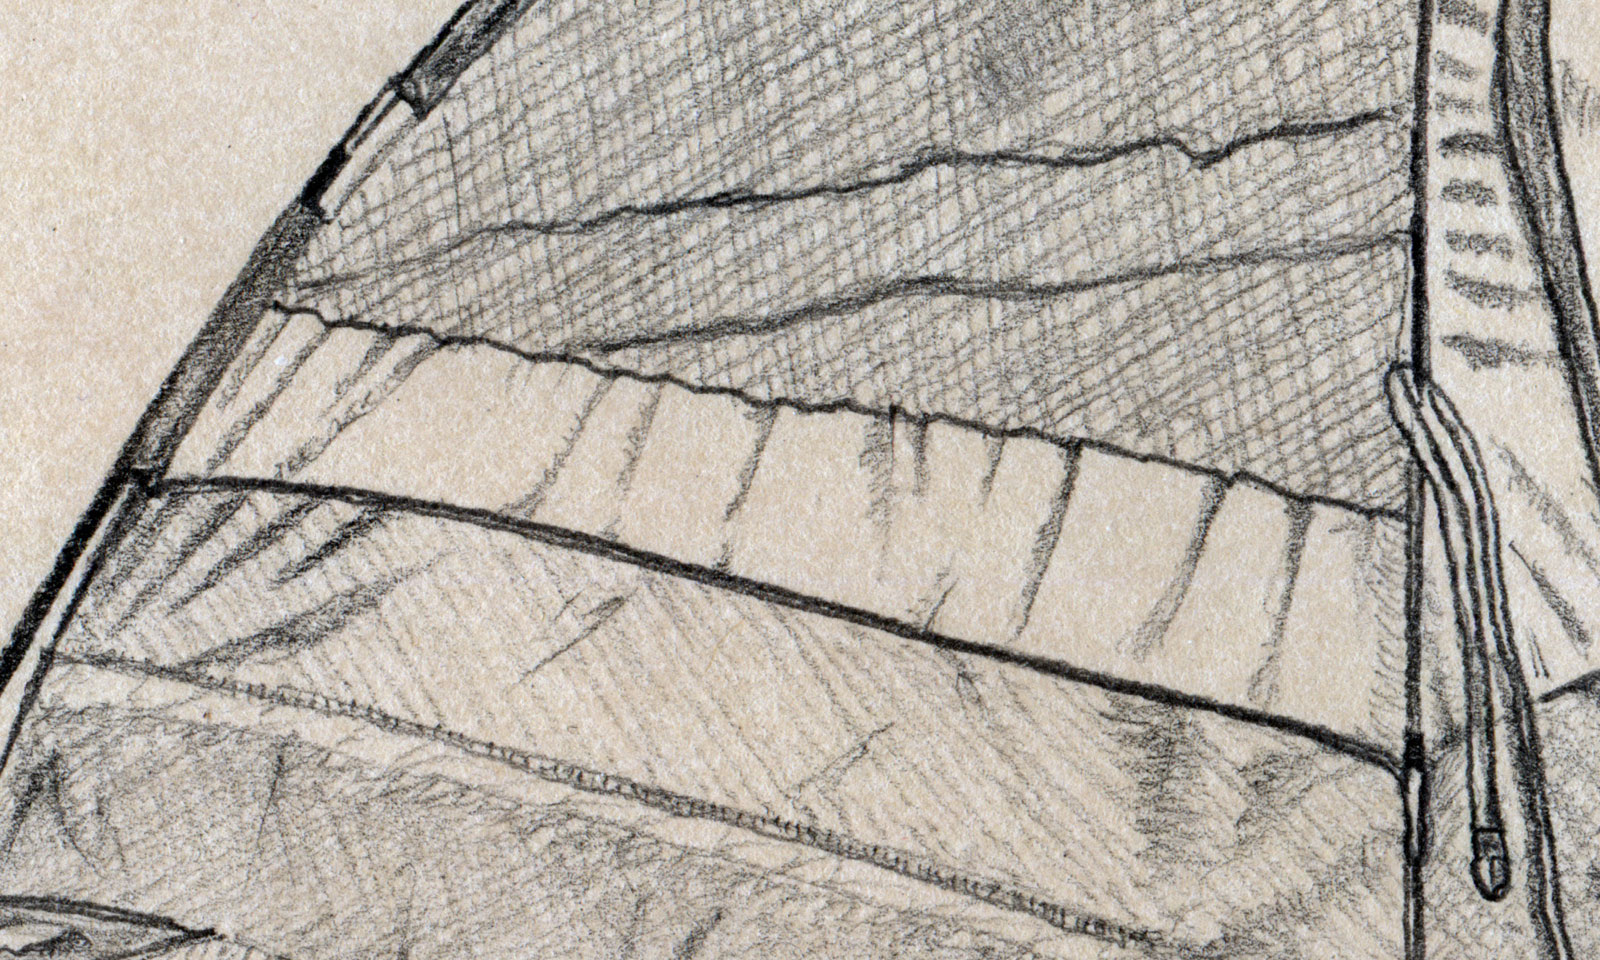 The 'folds' in the top bar are my favorite feature of this drawing - simple yet effective.